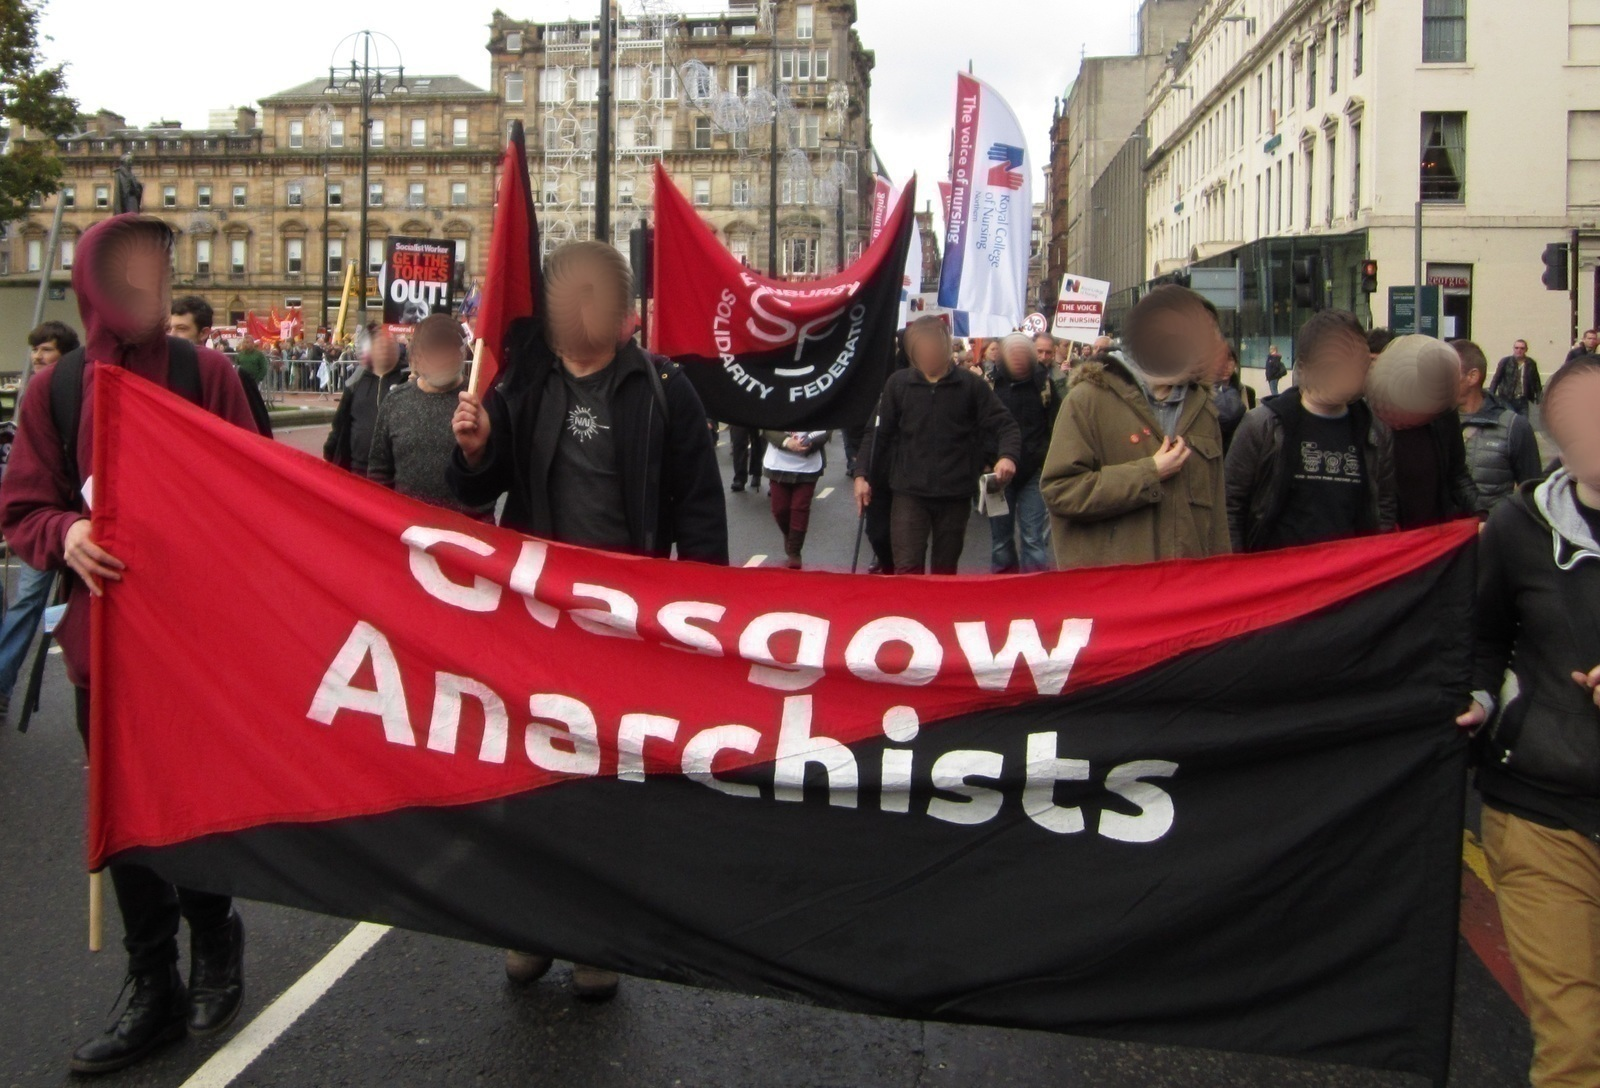 Thousands march against cuts in Glasgow